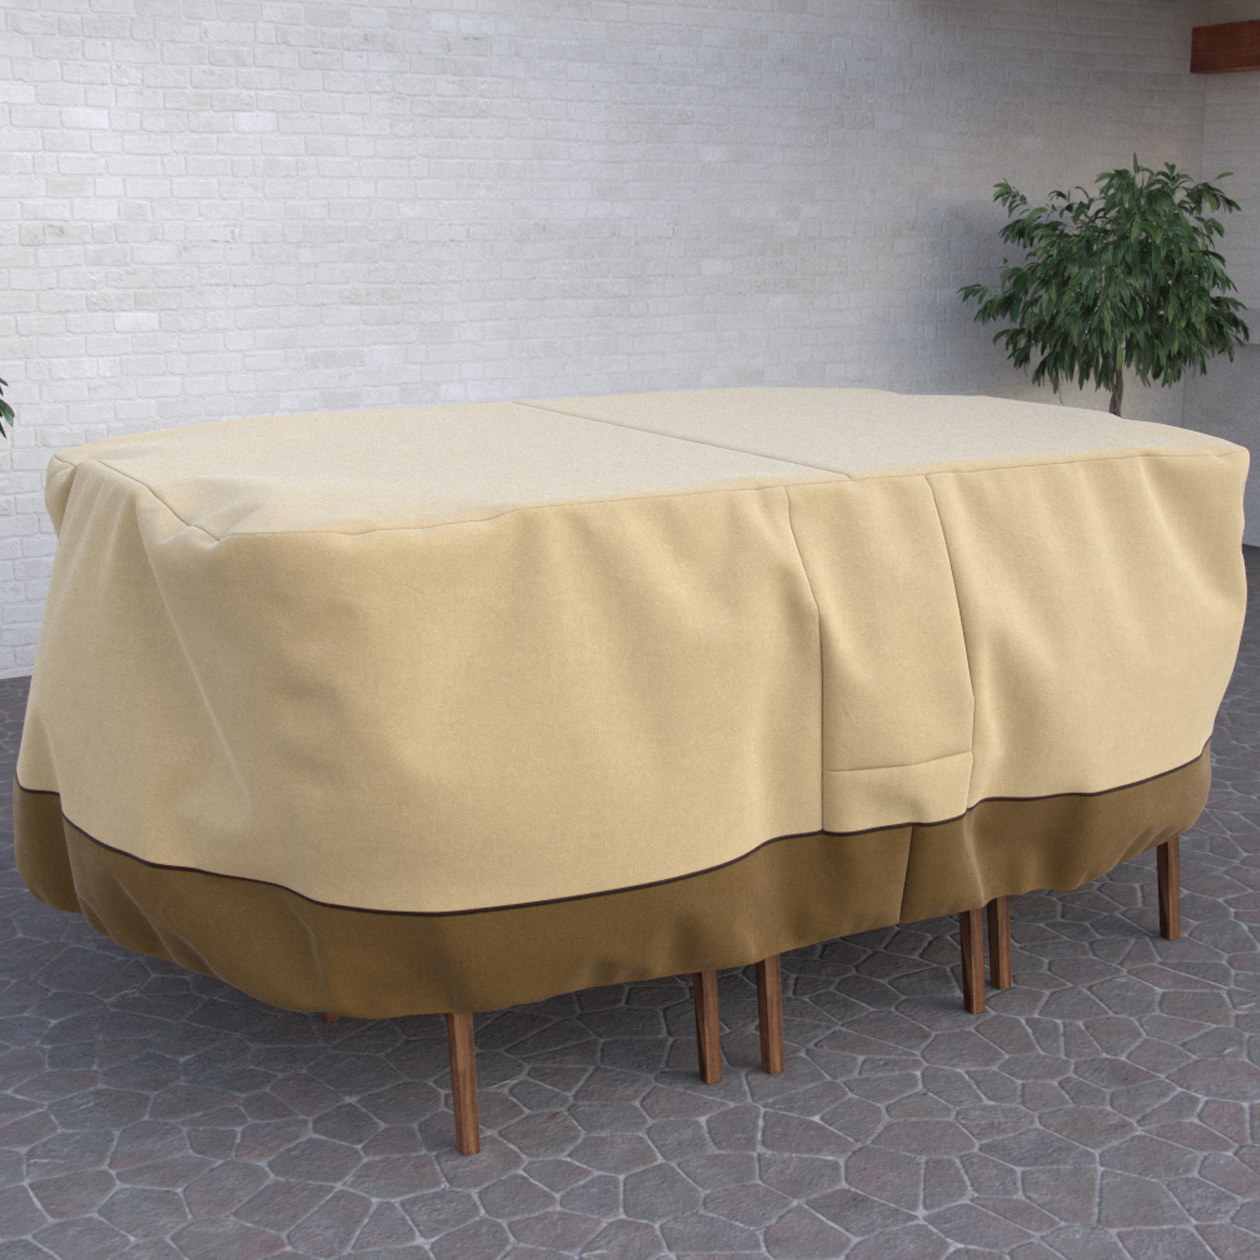 Fade Proof Rectangular Or Oval Heavy Duty Patio Table U0026 Chair Set Cover    Durable And Water Resistant Outdoor Furniture Cover, Medium Part 81